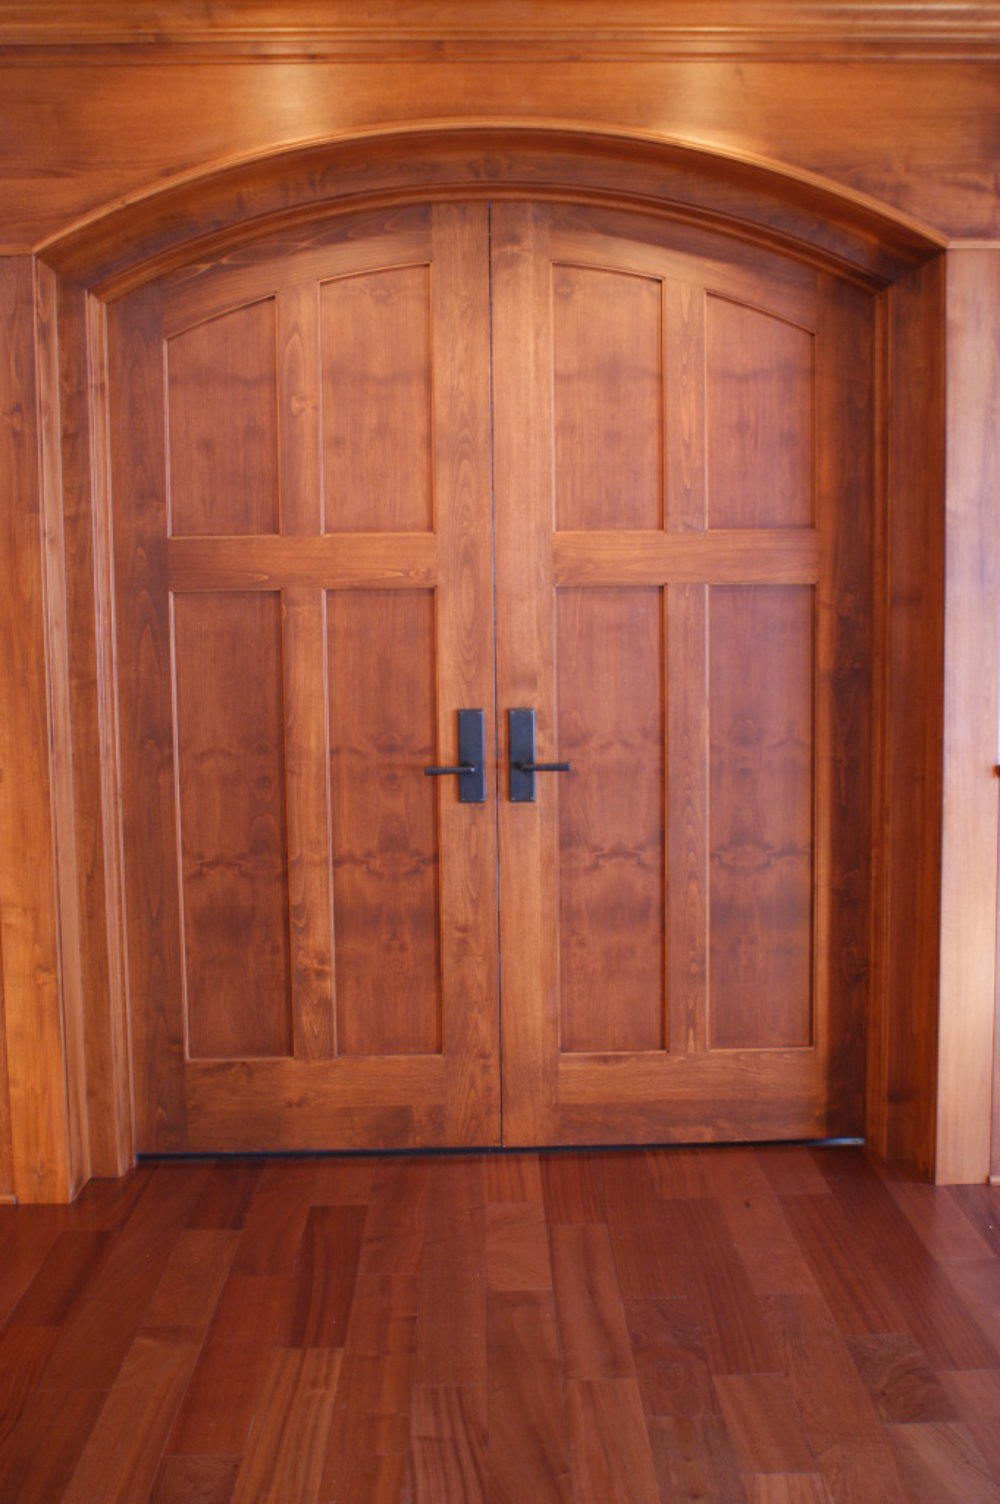 Home-Theater-Door-681x1024.jpg